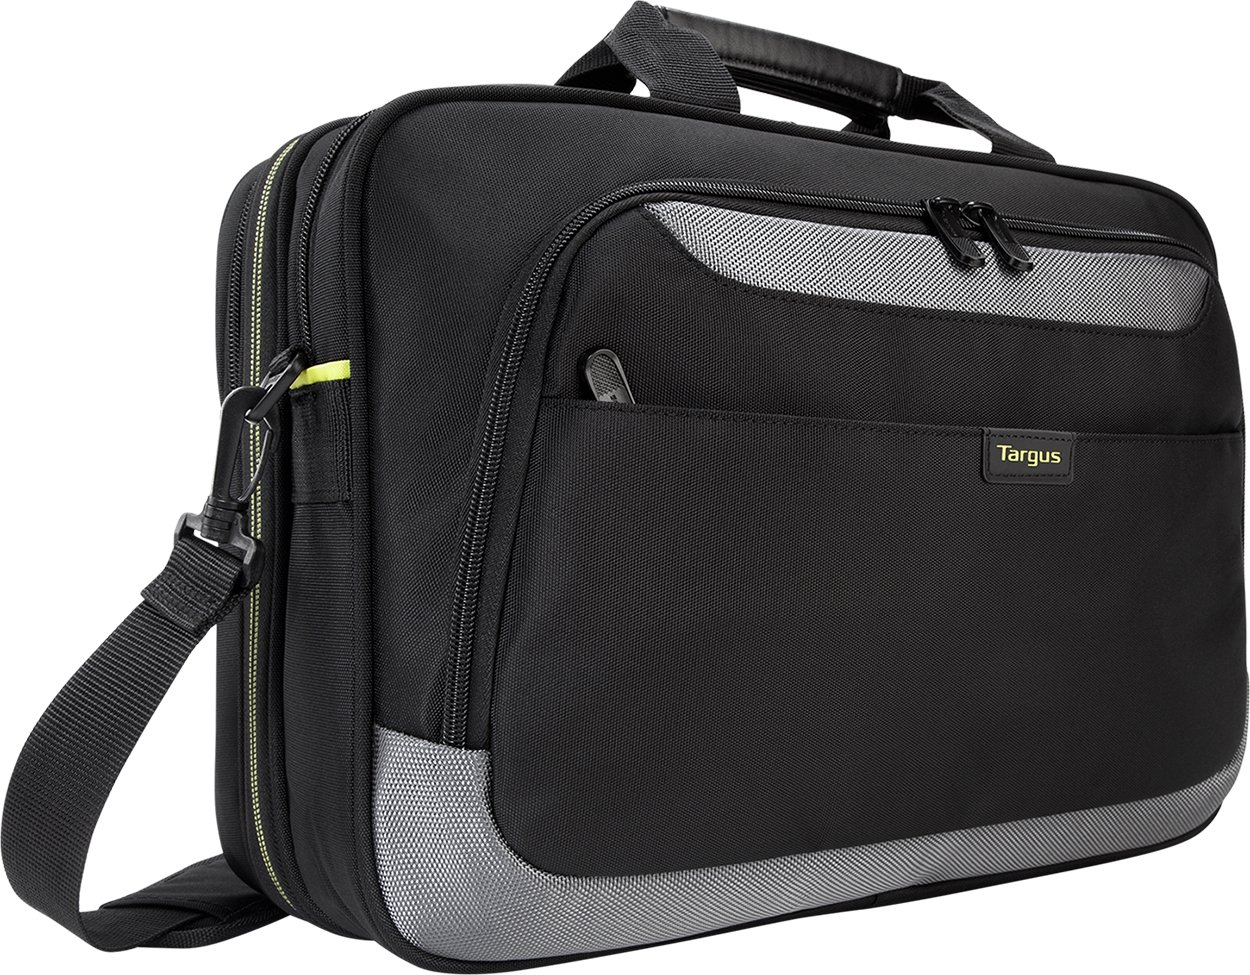 Targus CityGear II Laptop Bag for 15.6-Inch Laptops, Black (TCG465) by Targus